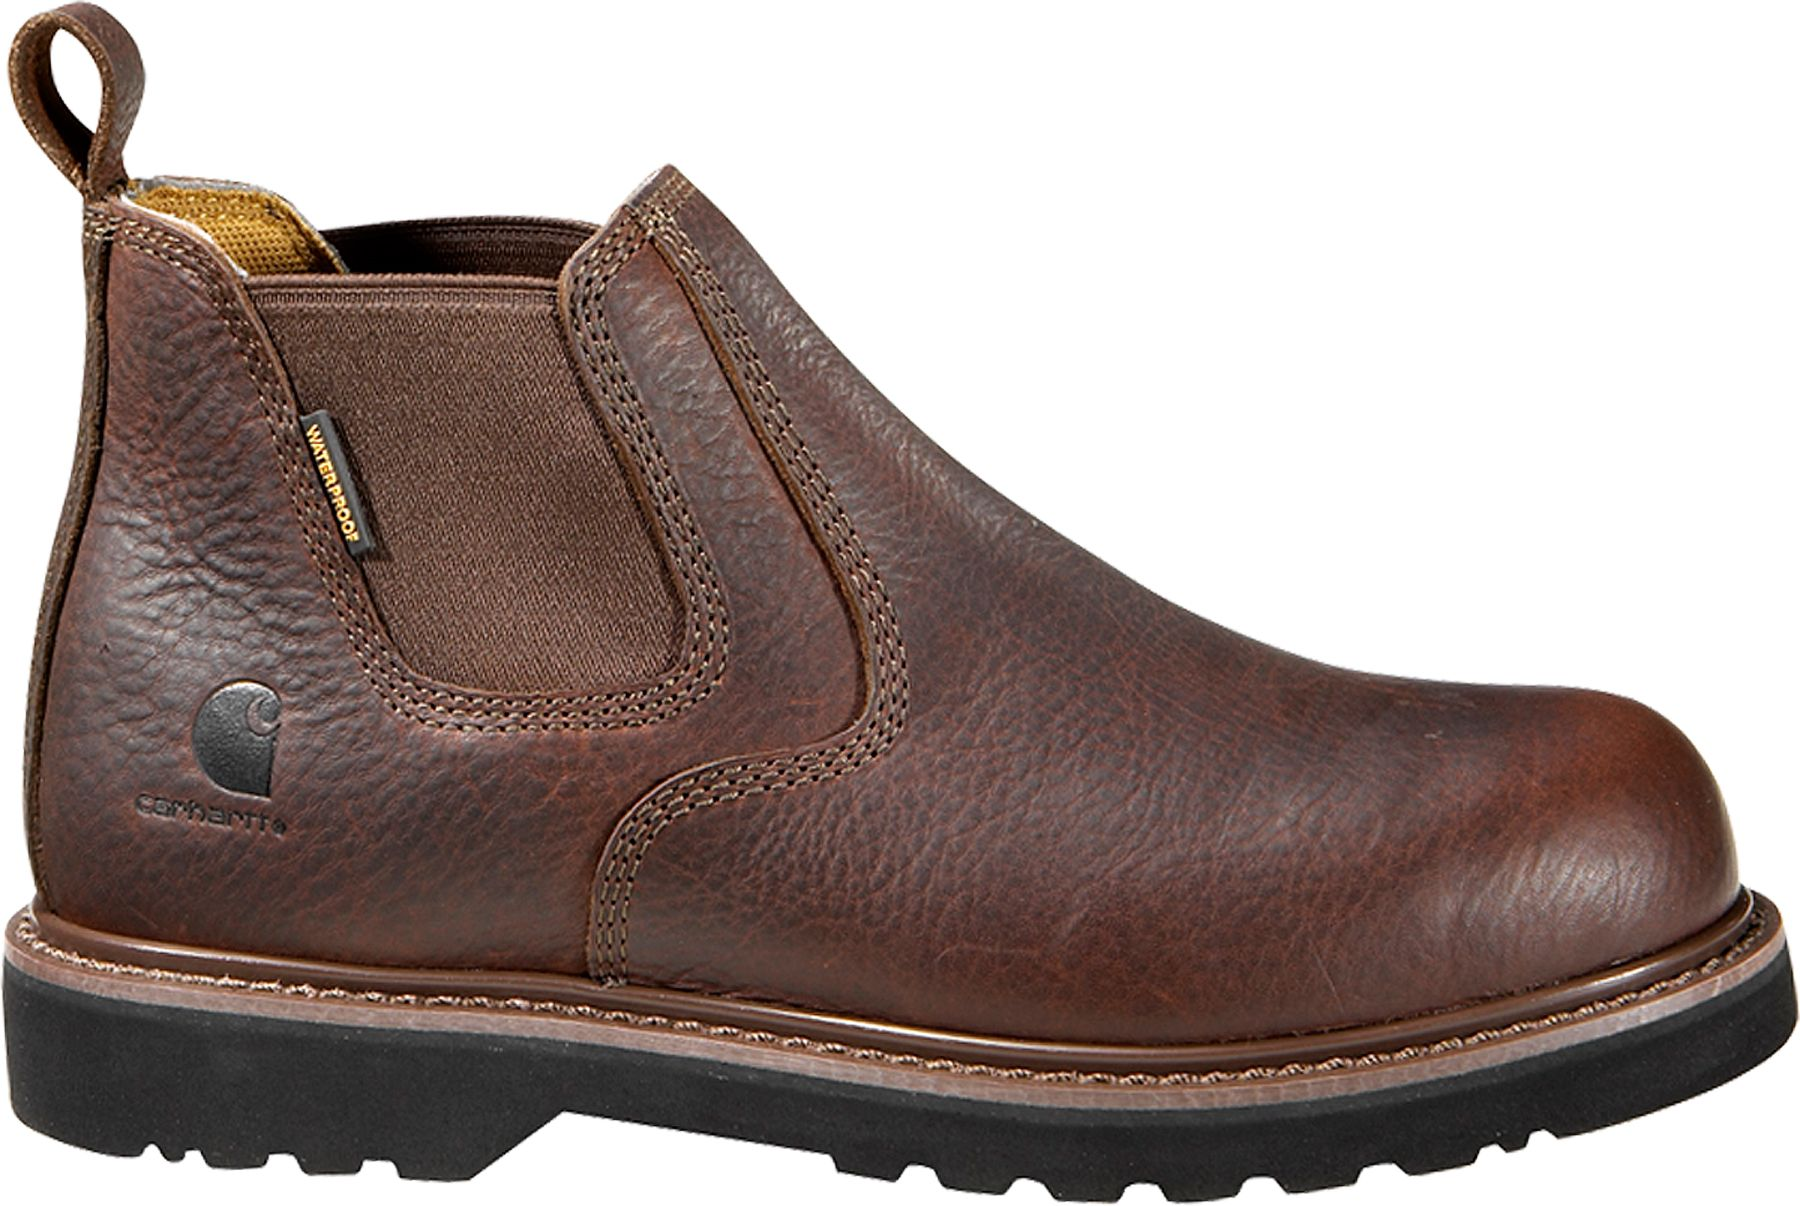 "Carhartt Men&39s Twin Gore Safety Toe 4"" Work Boots